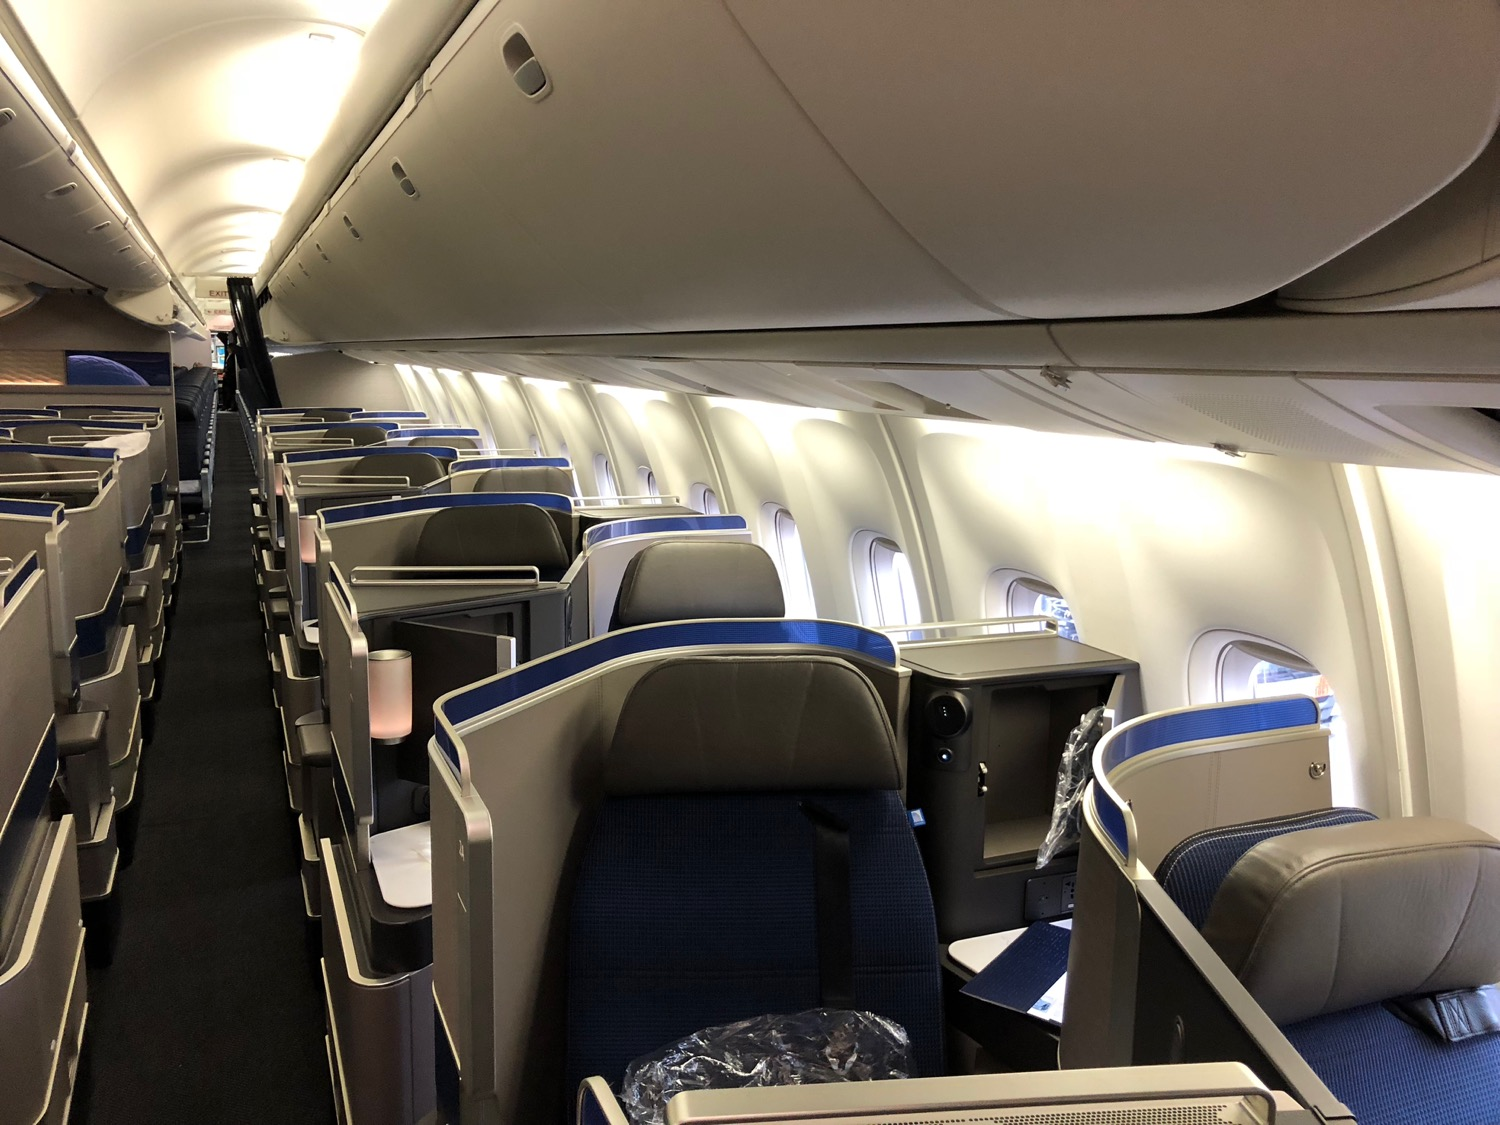 review united airlines   polaris business class amsterdam  newark   lets fly